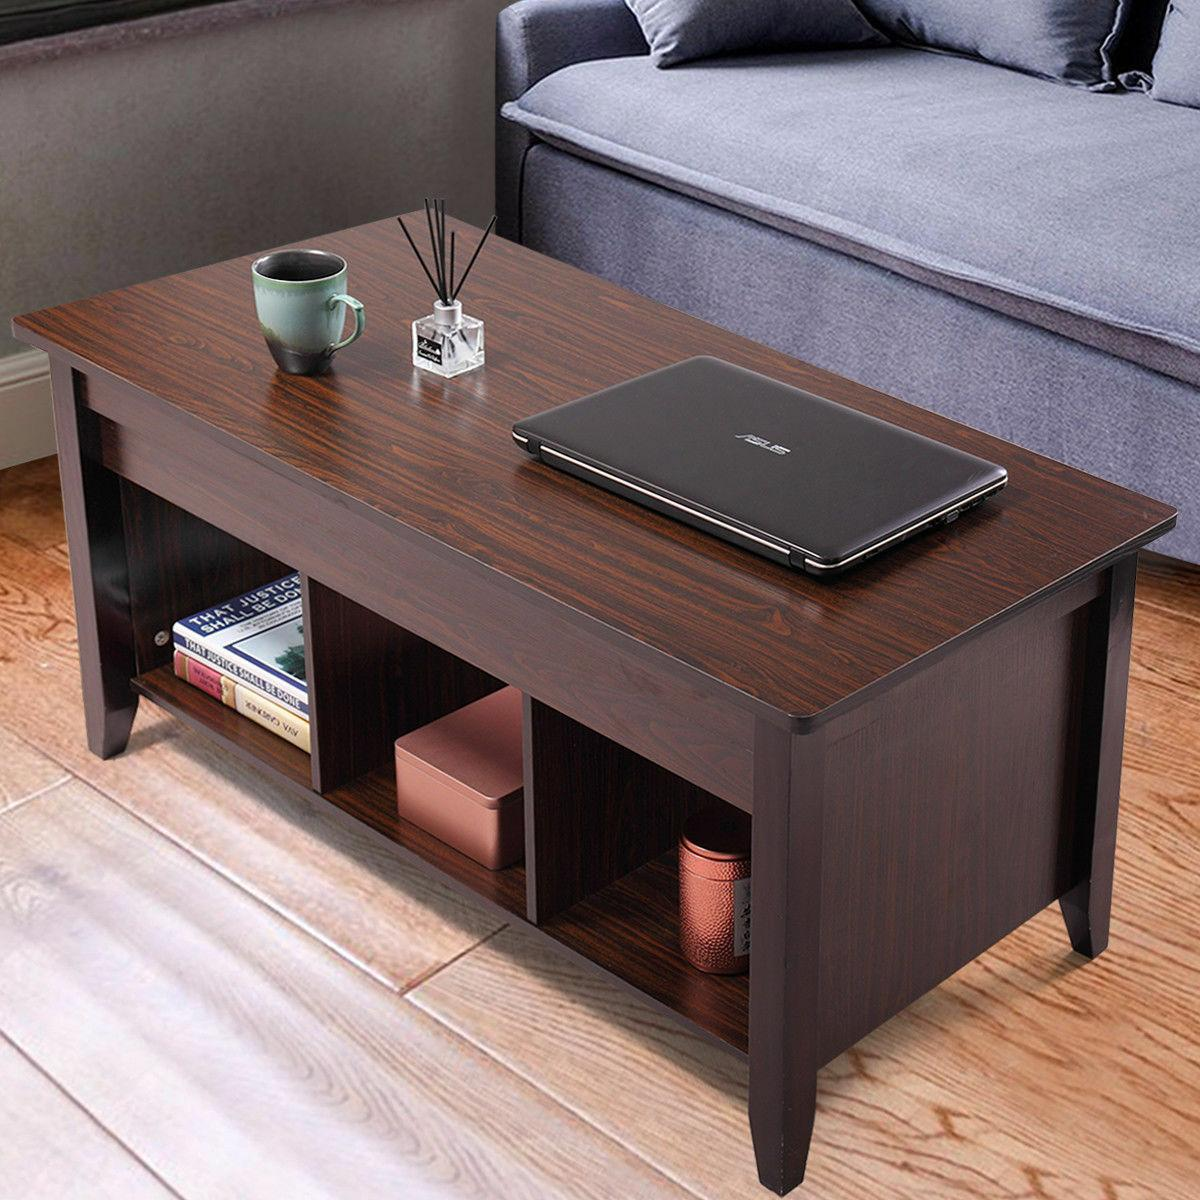 Lift Top Coffee Table w/Hidden Storage Shelves Furniture,Wooden